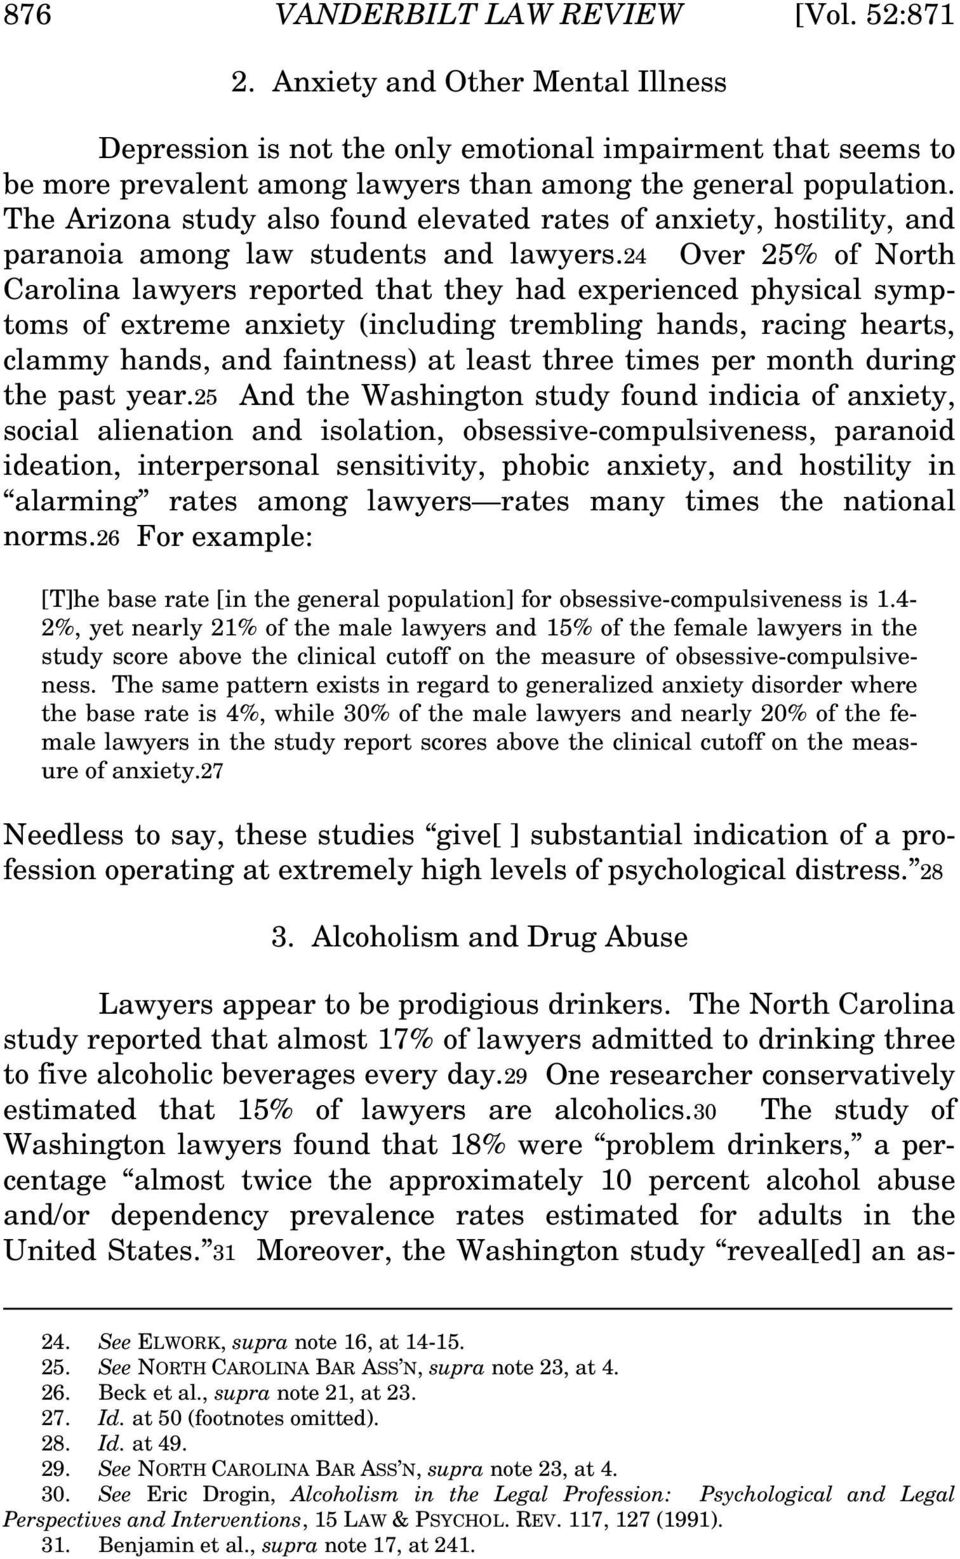 The Arizona study also found elevated rates of anxiety, hostility, and paranoia among law students and lawyers.